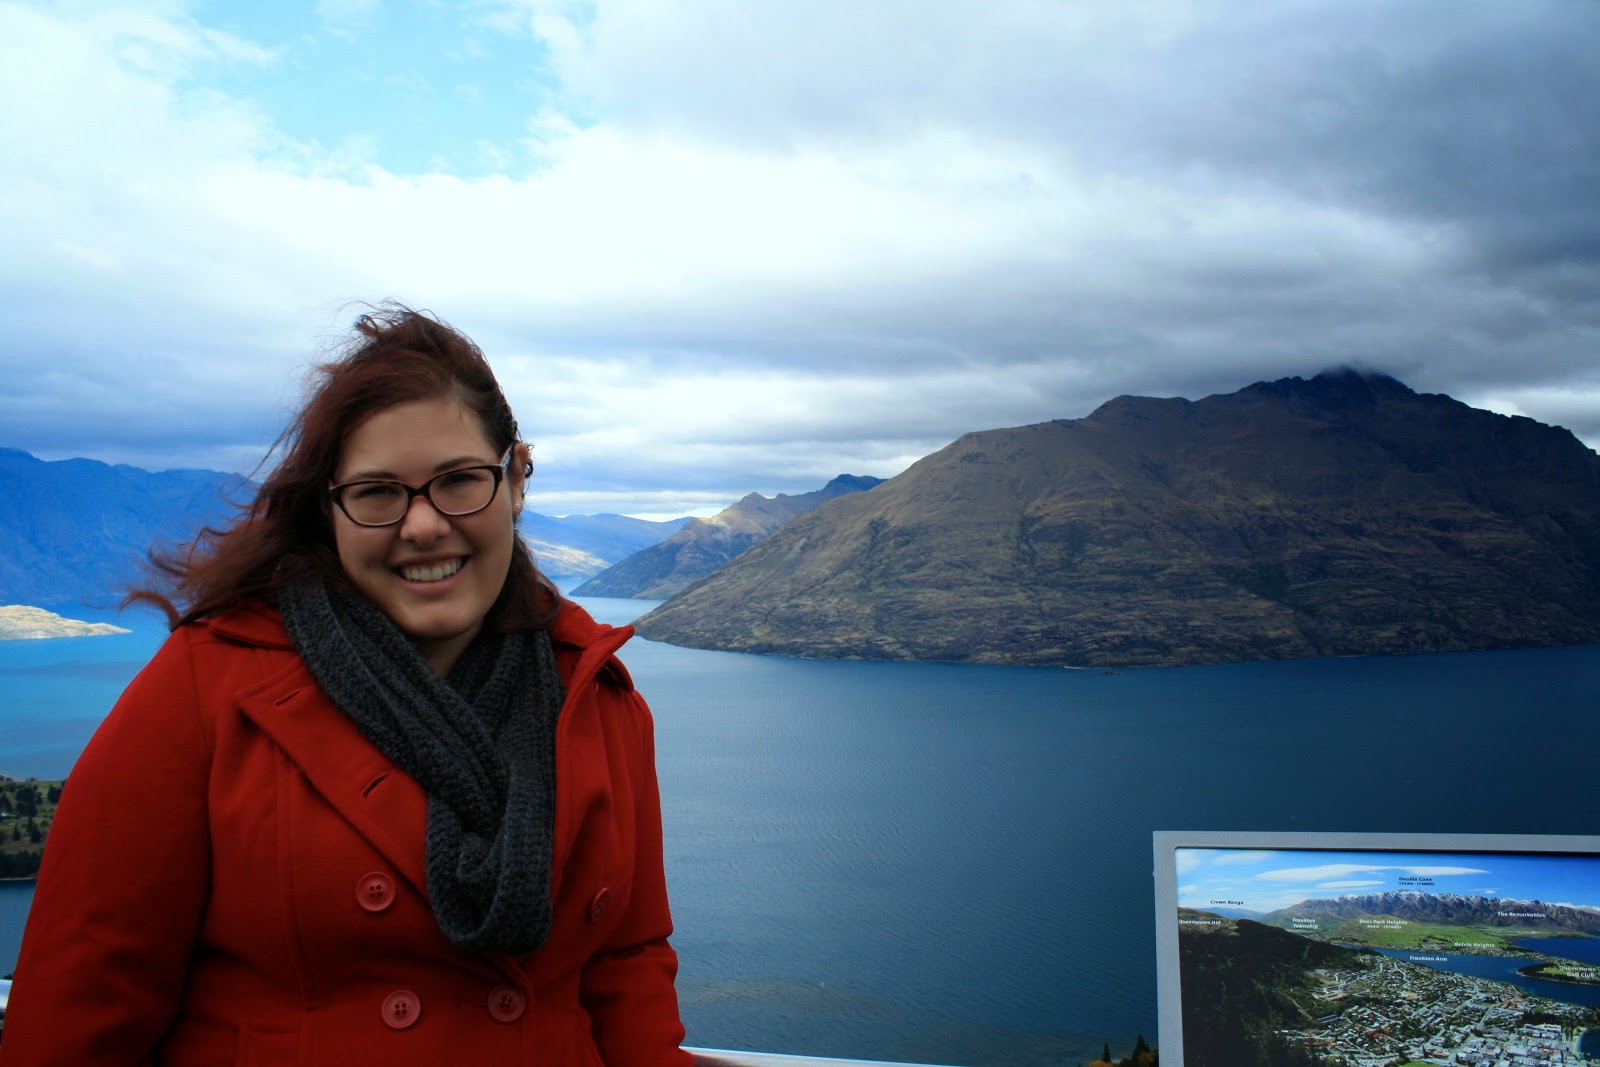 Me posing at the top of the gondolas, Queenstown.